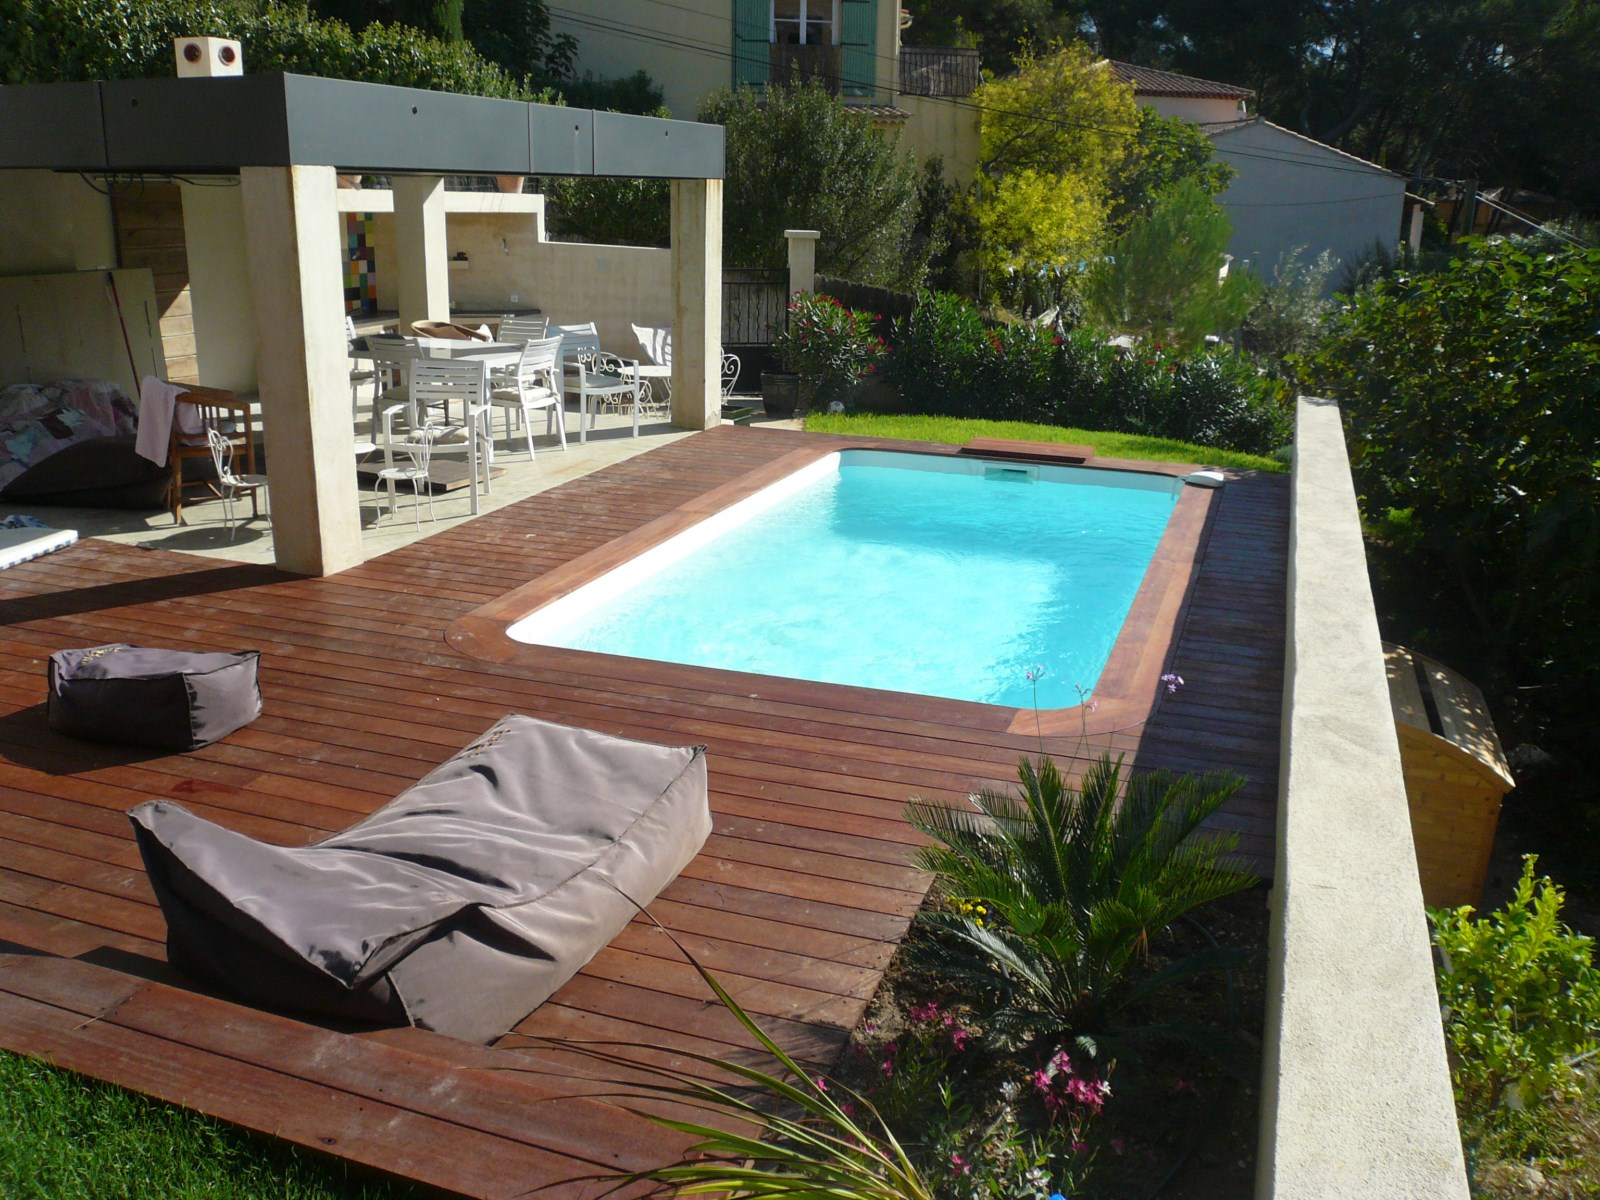 R alisation d 39 une piscine coque polyester rectangulaire for Installation piscine enterree